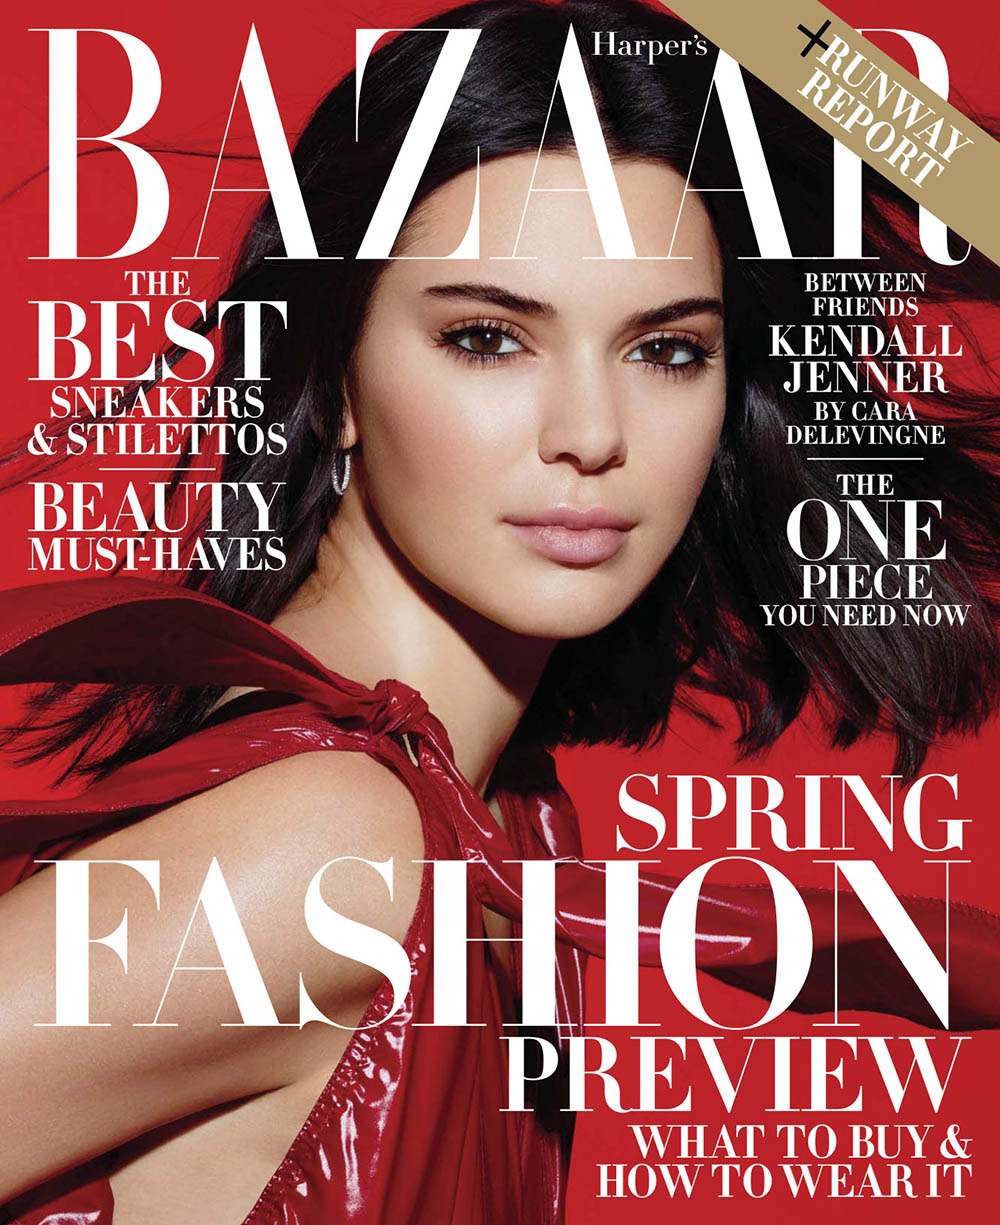 Kendall Jenner covers Harper's Bazaar US February 2018 by Sølve Sundsbø